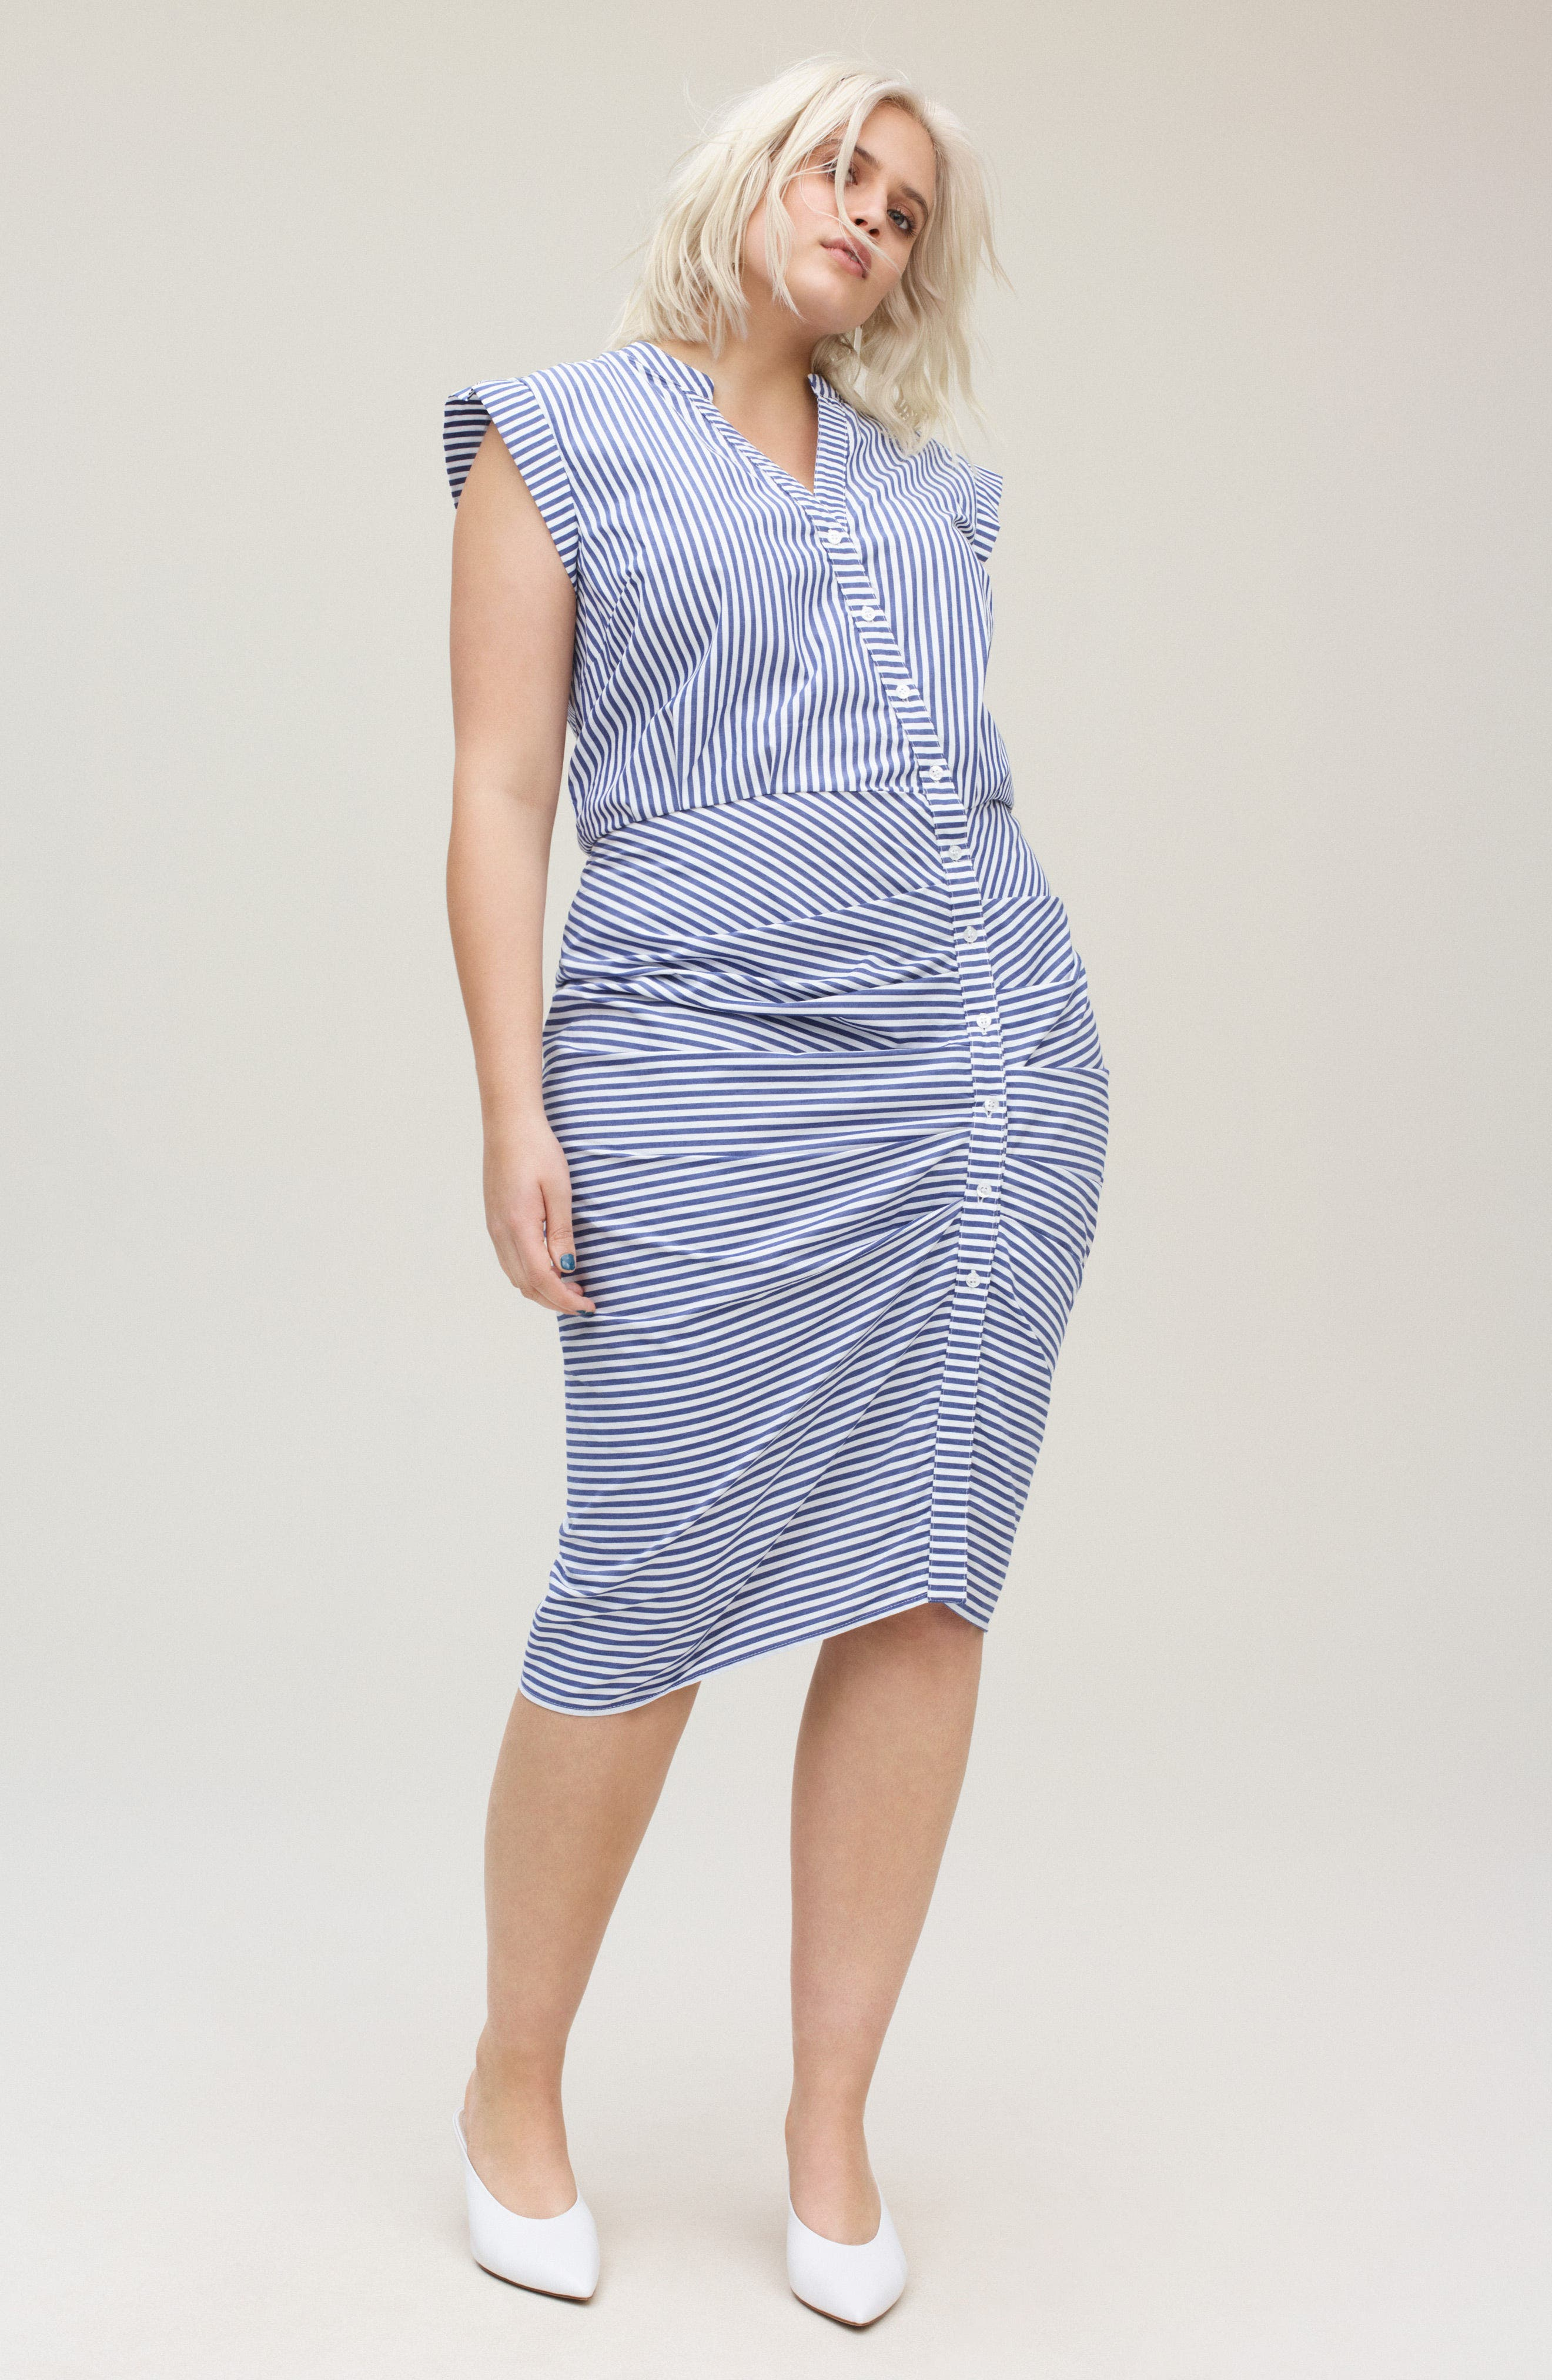 Stripe Ruched Cotton Shirtdress,                             Alternate thumbnail 15, color,                             400